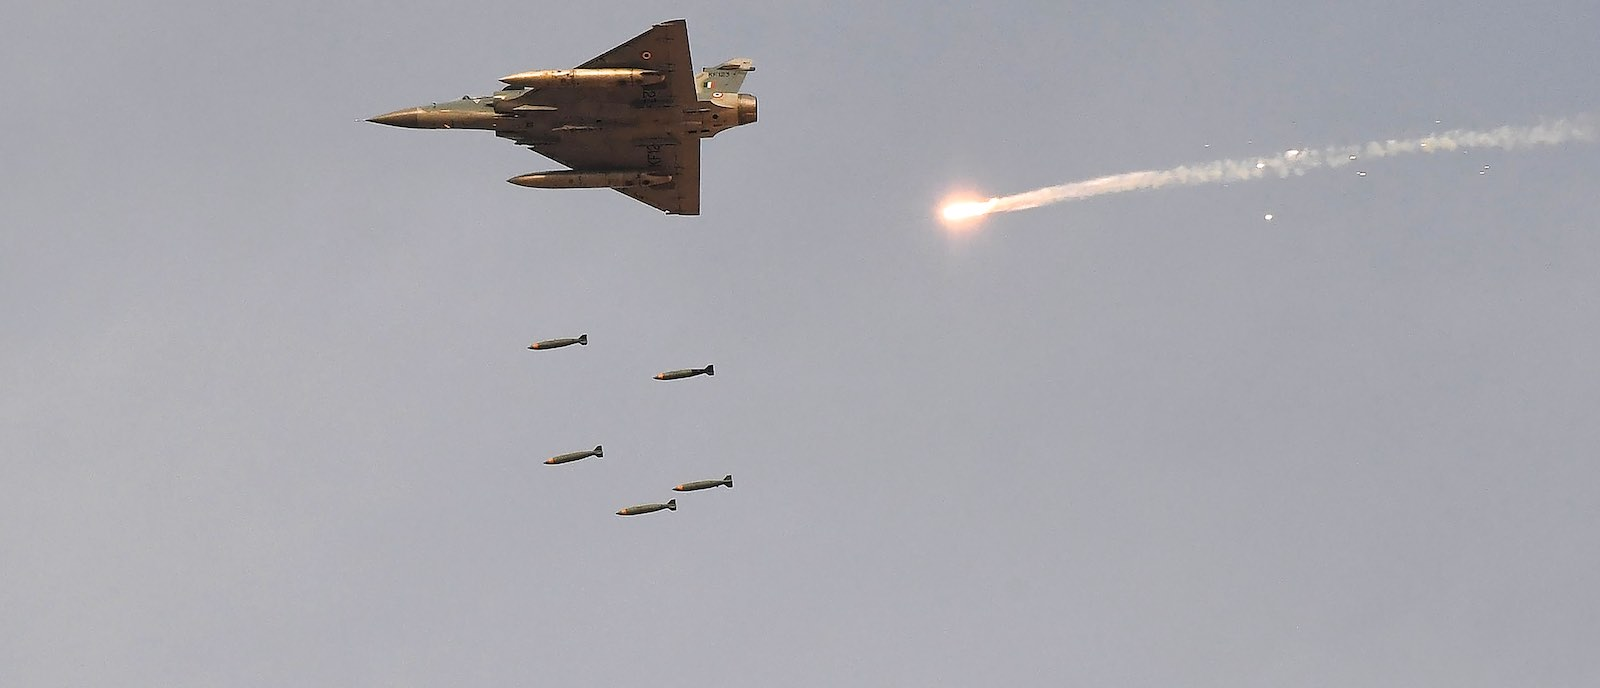 An Indian Air Force Mirage-2000 fighter of the type said to have bombed near Balakot during a training exercise in February (Photo:  Prakash Singh via Getty)